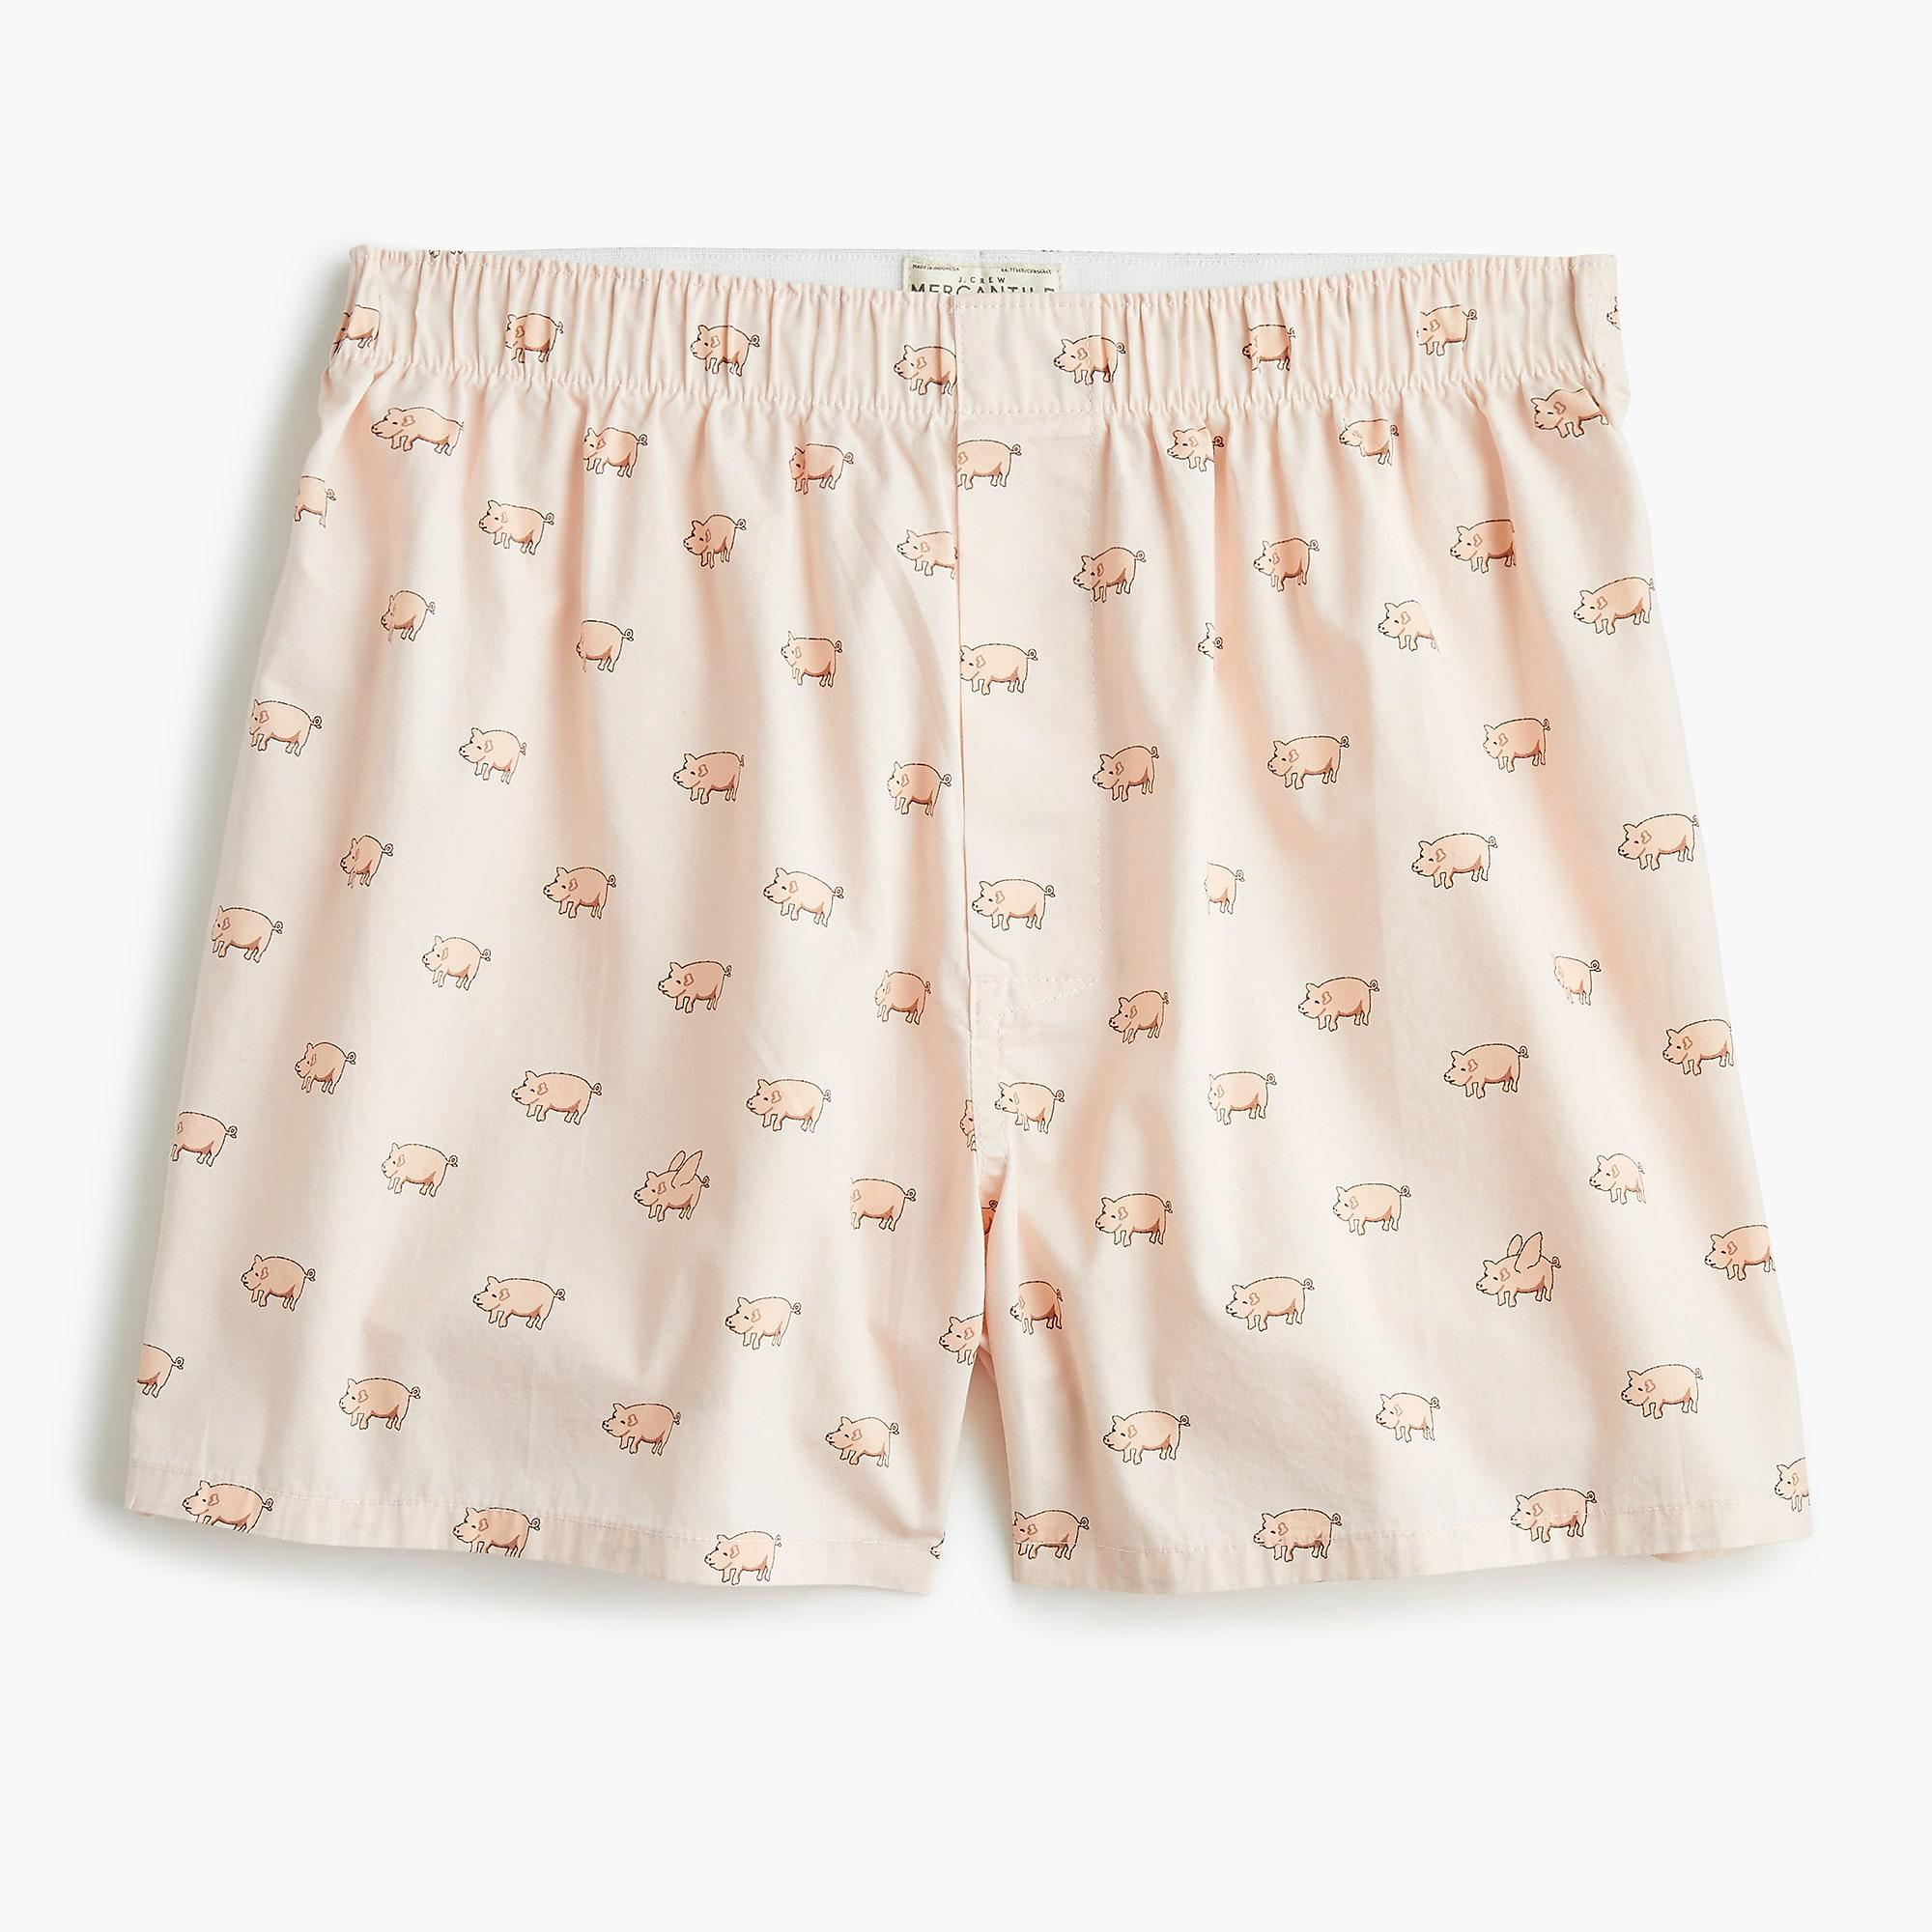 92d73efb7b15 Lyst - J.Crew Mercantile Flying Pigs Boxers in Pink for Men